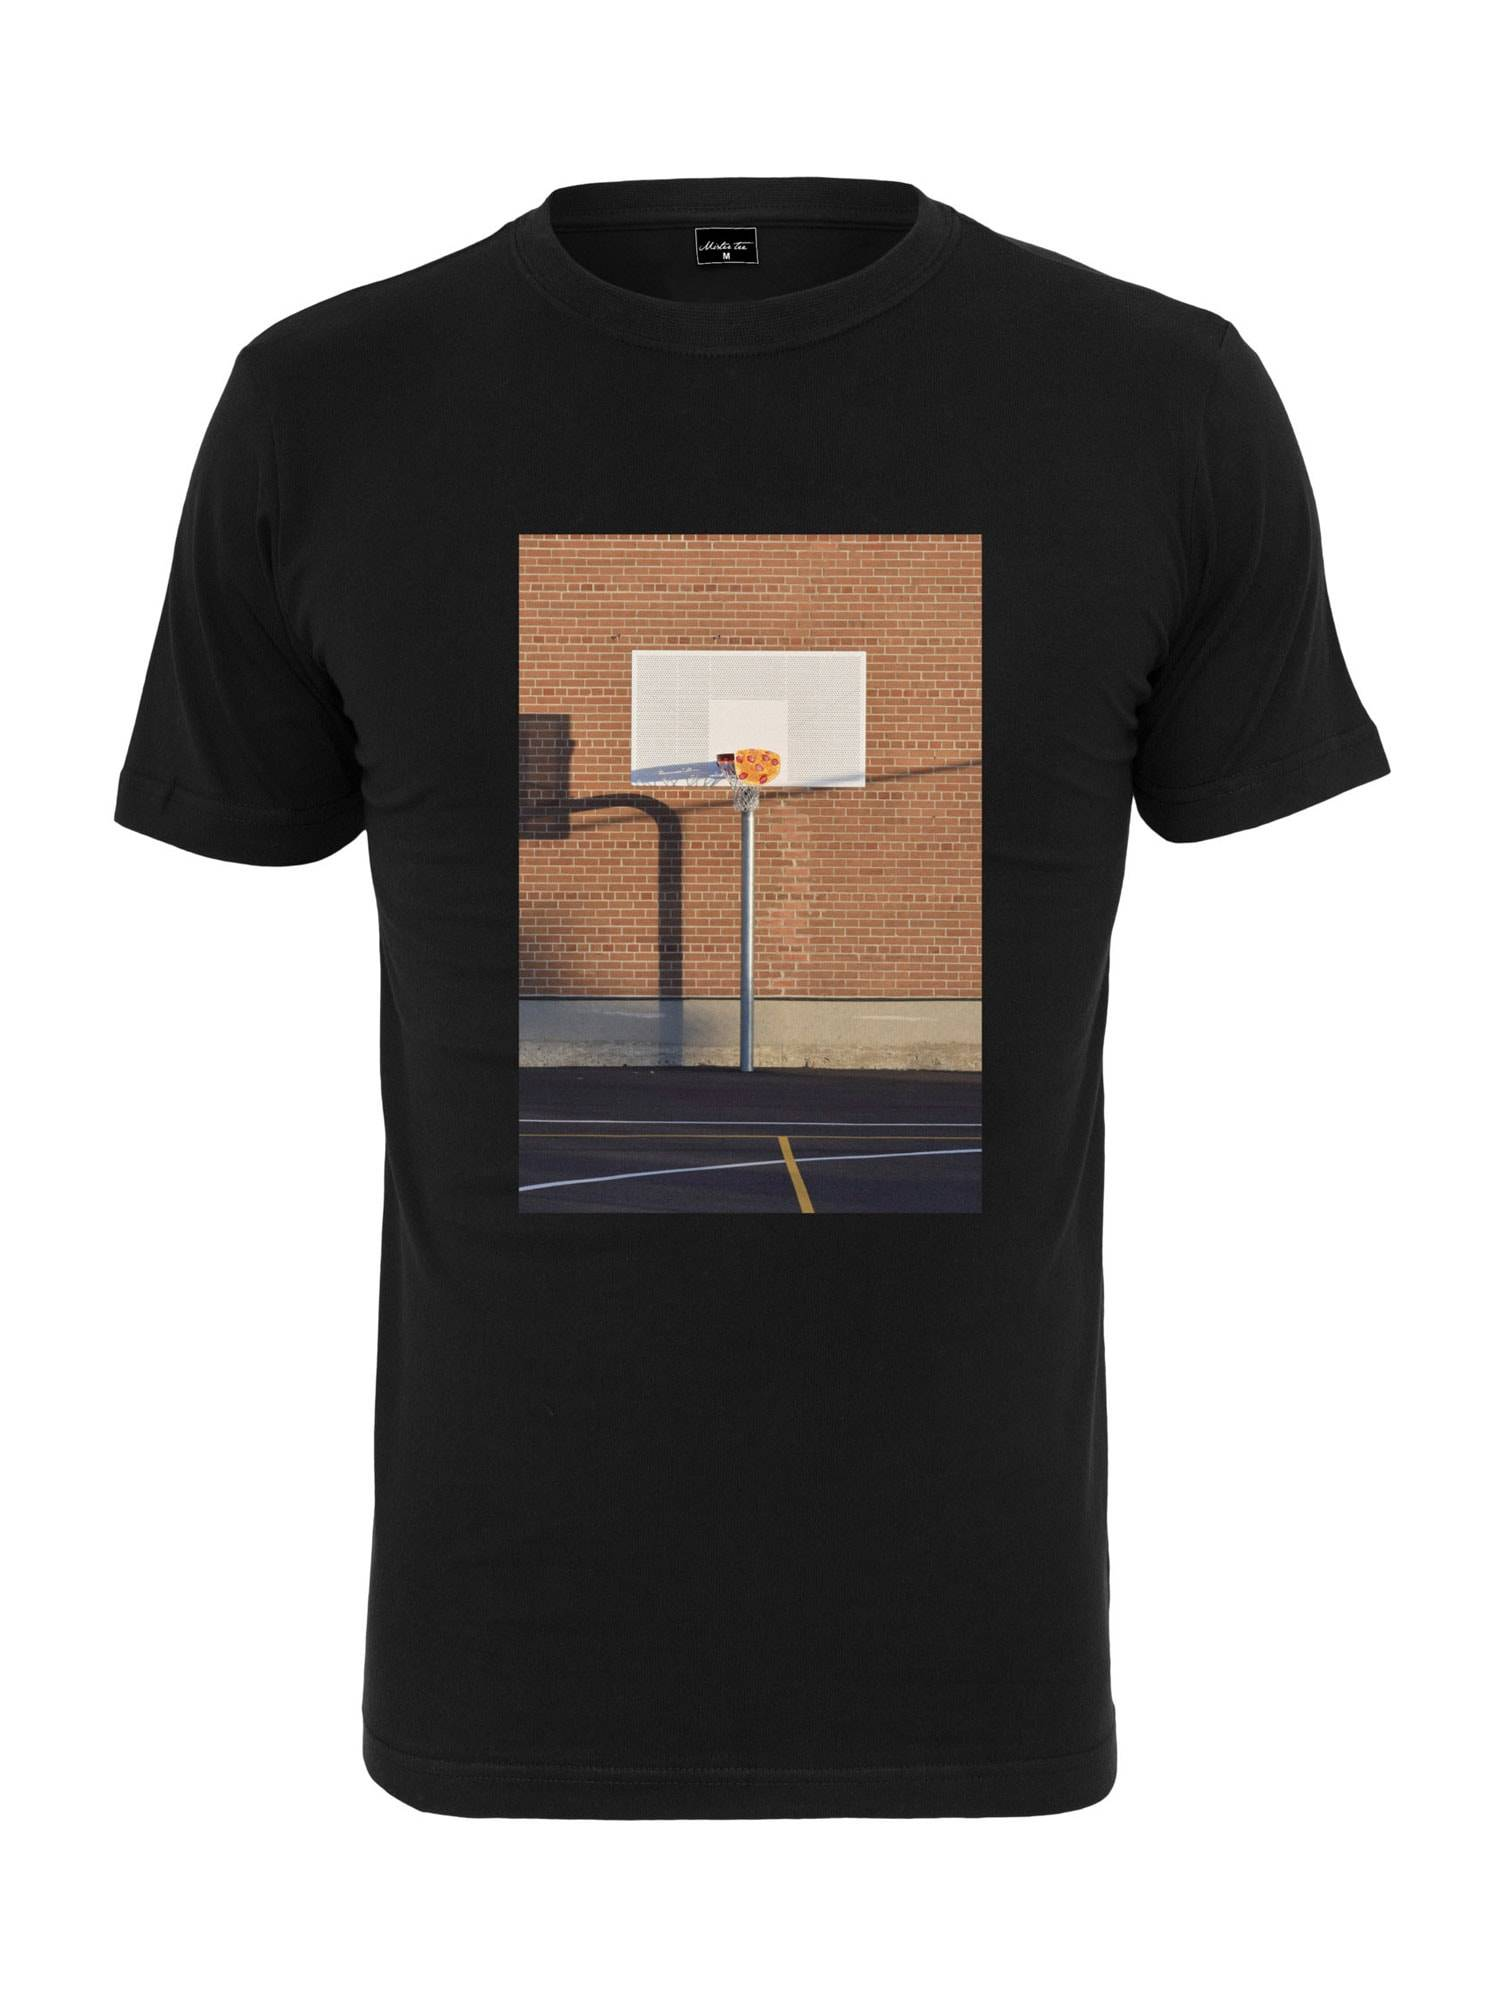 Tee T-Shirt 'Pizza Basketball Court'  - Noir - Taille: XS - male